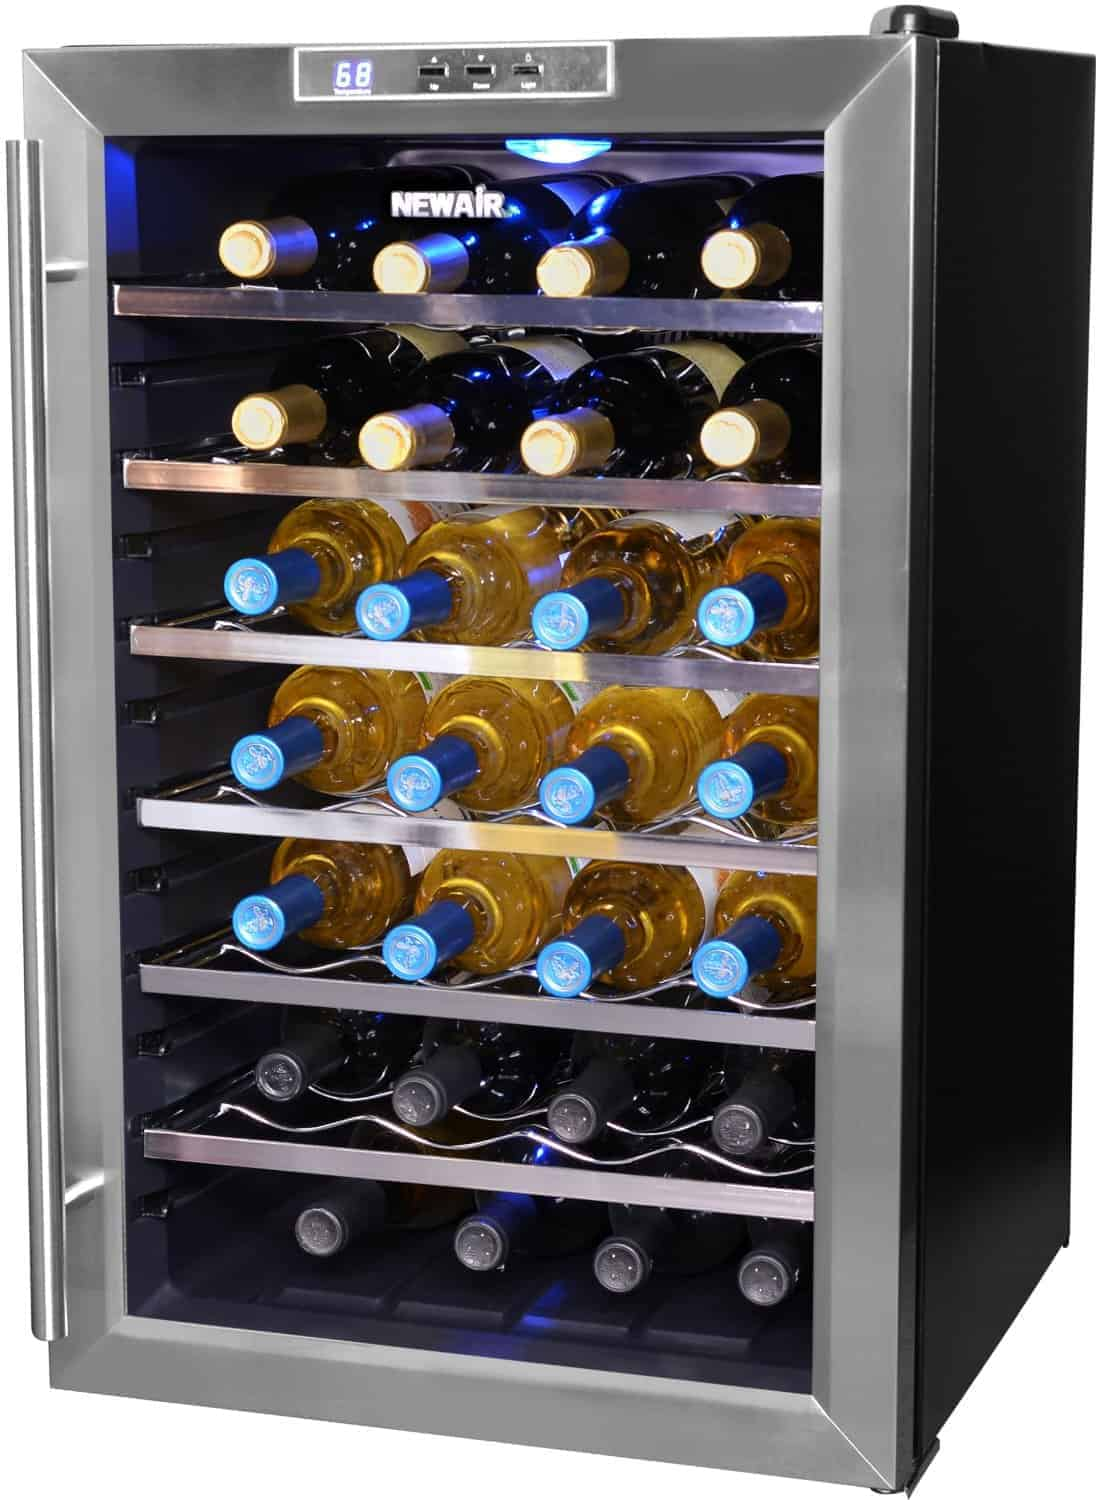 Wine Refrigerator Reviews >> Best Wine Cooler Top Reviews And Picks For 2018